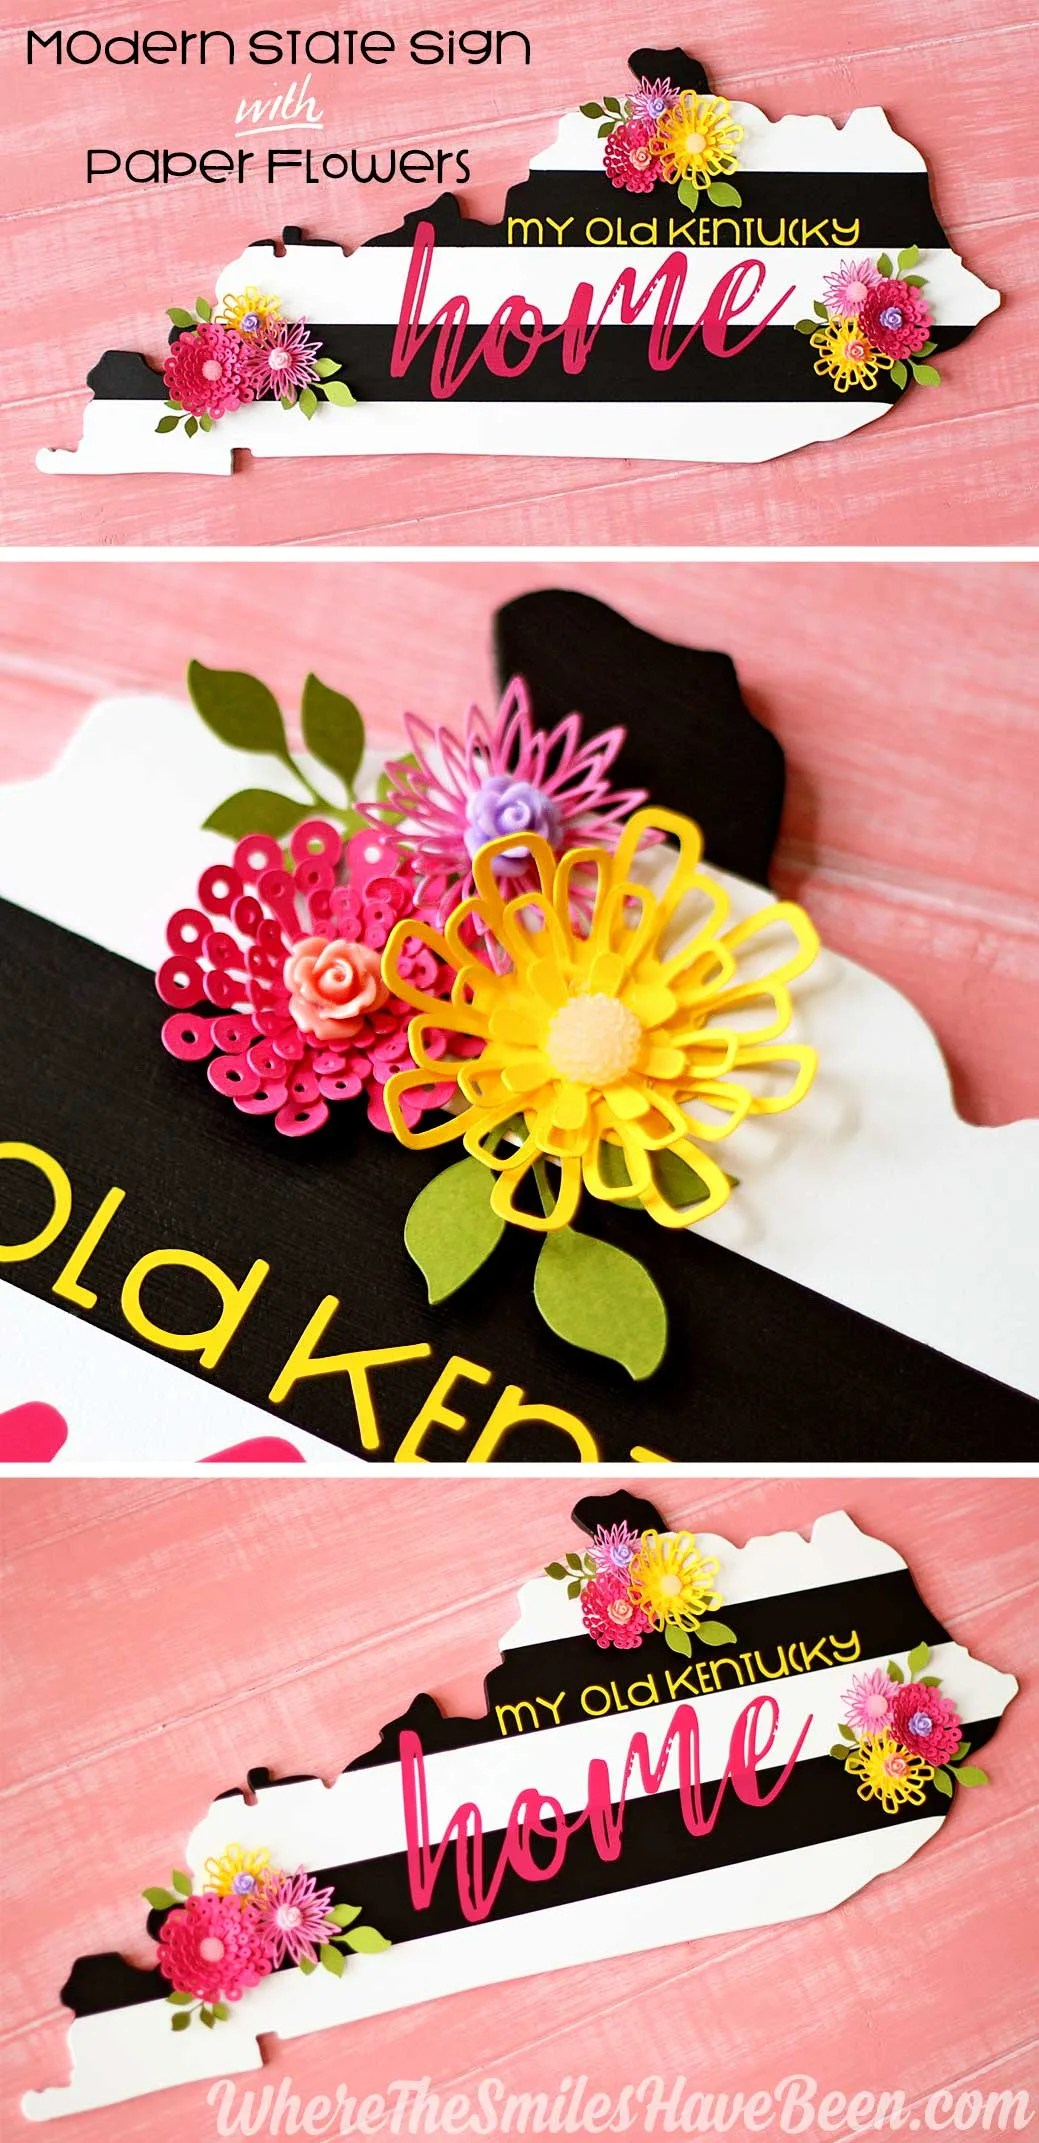 Modern Black & White Striped State Sign with Colorful Paper Flowers! | Where The Smiles Have Been